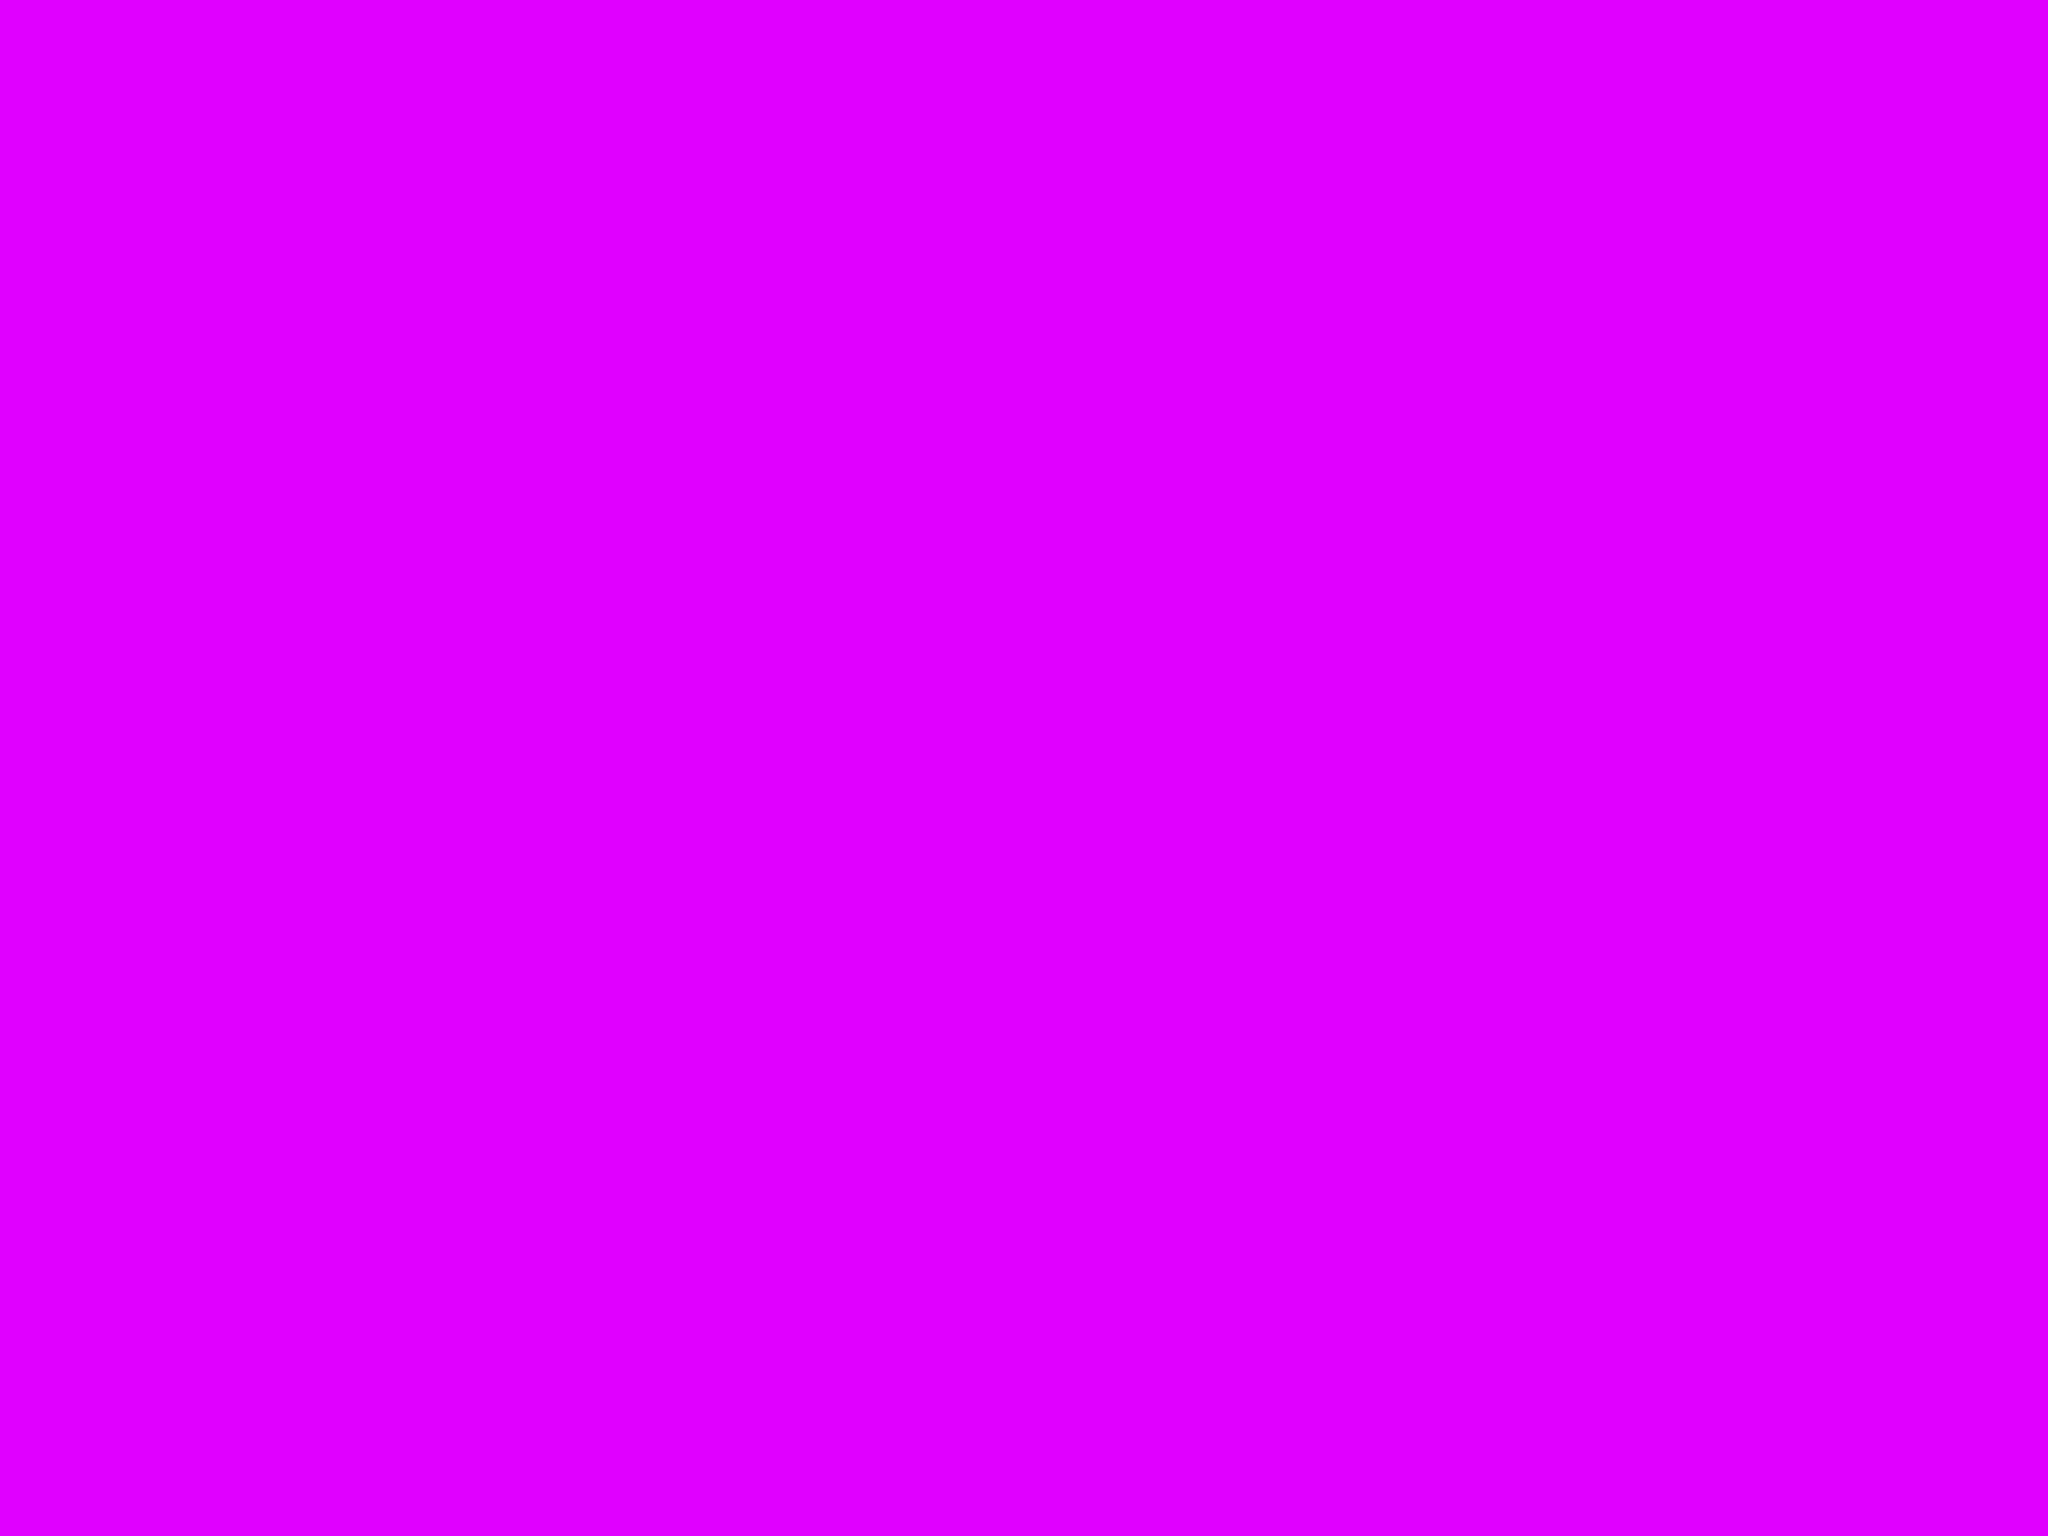 2048x1536 Phlox Solid Color Background